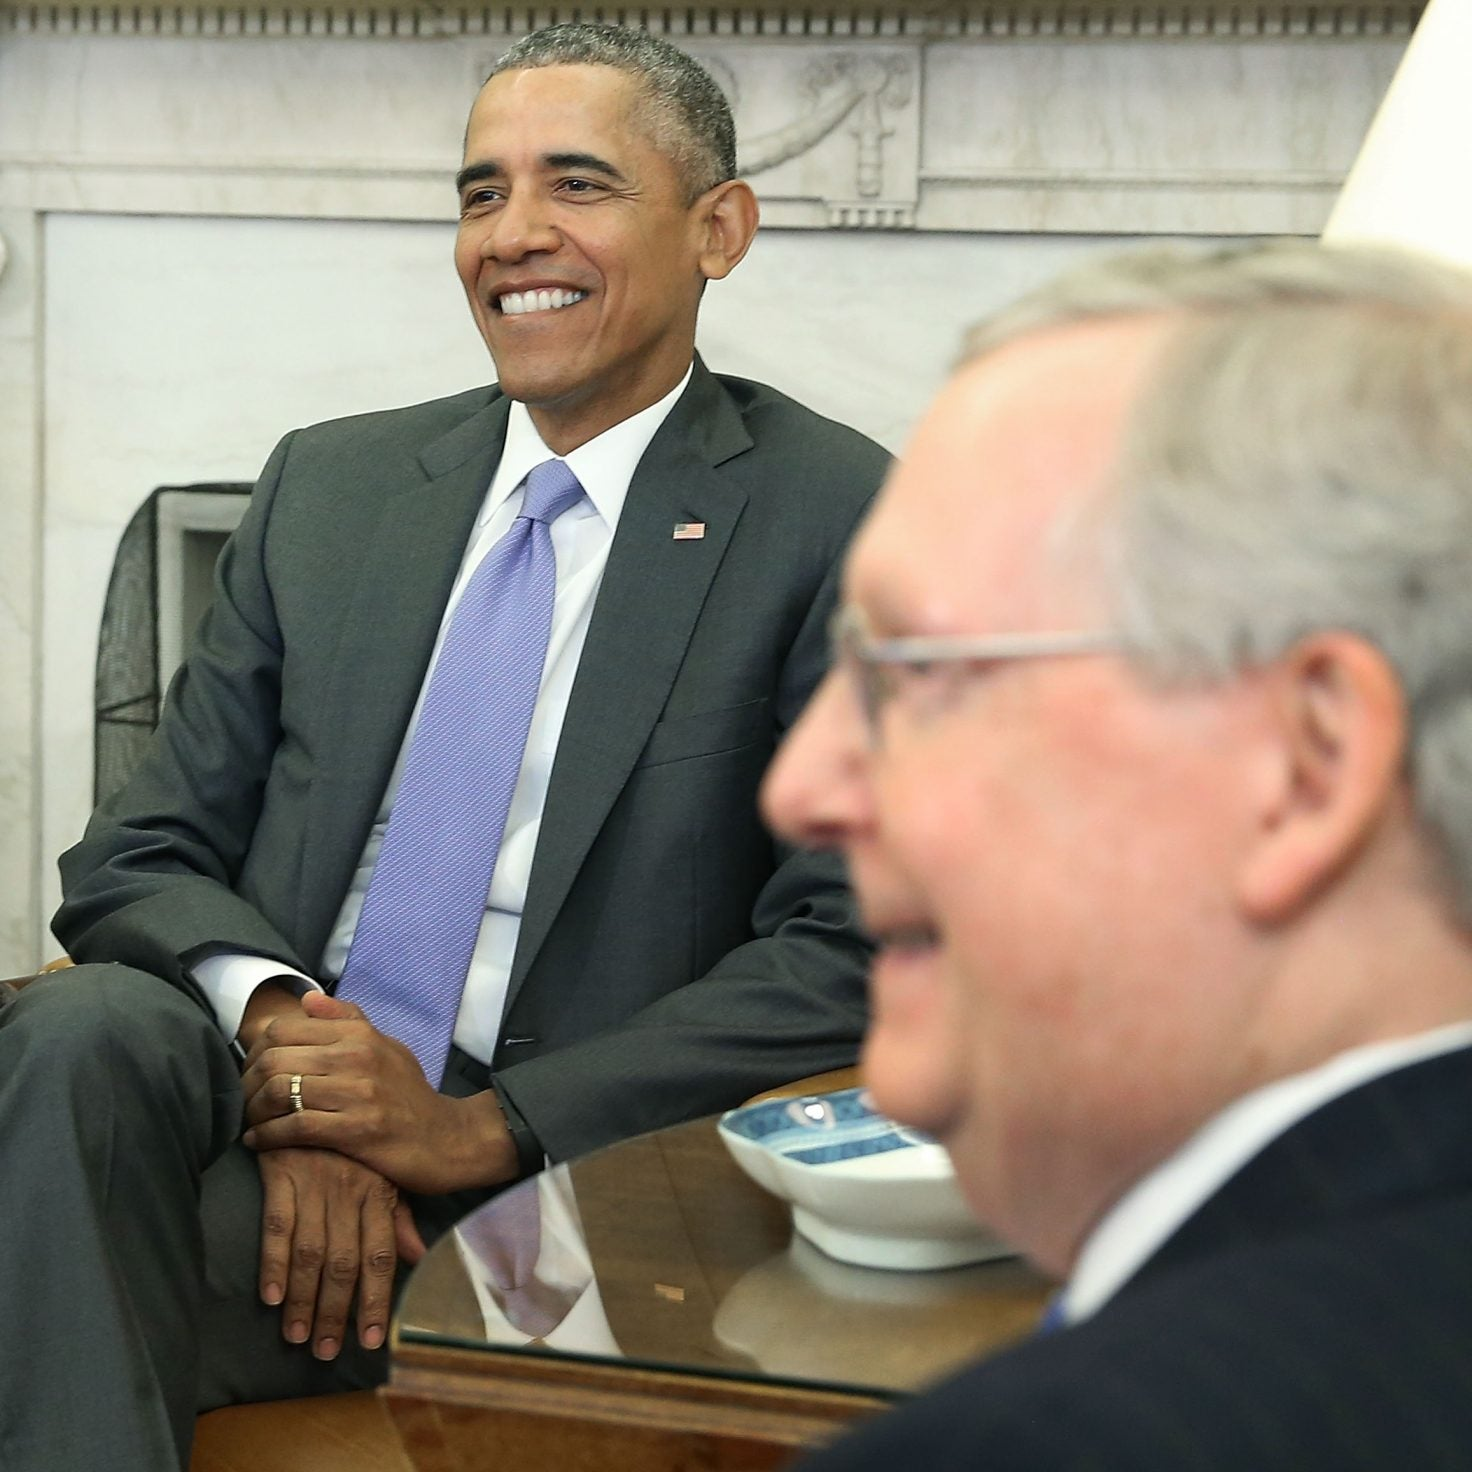 Obama's Response To McConnell's 'Shut Your Mouth' Comment: 'Make Better Policy Decisions'